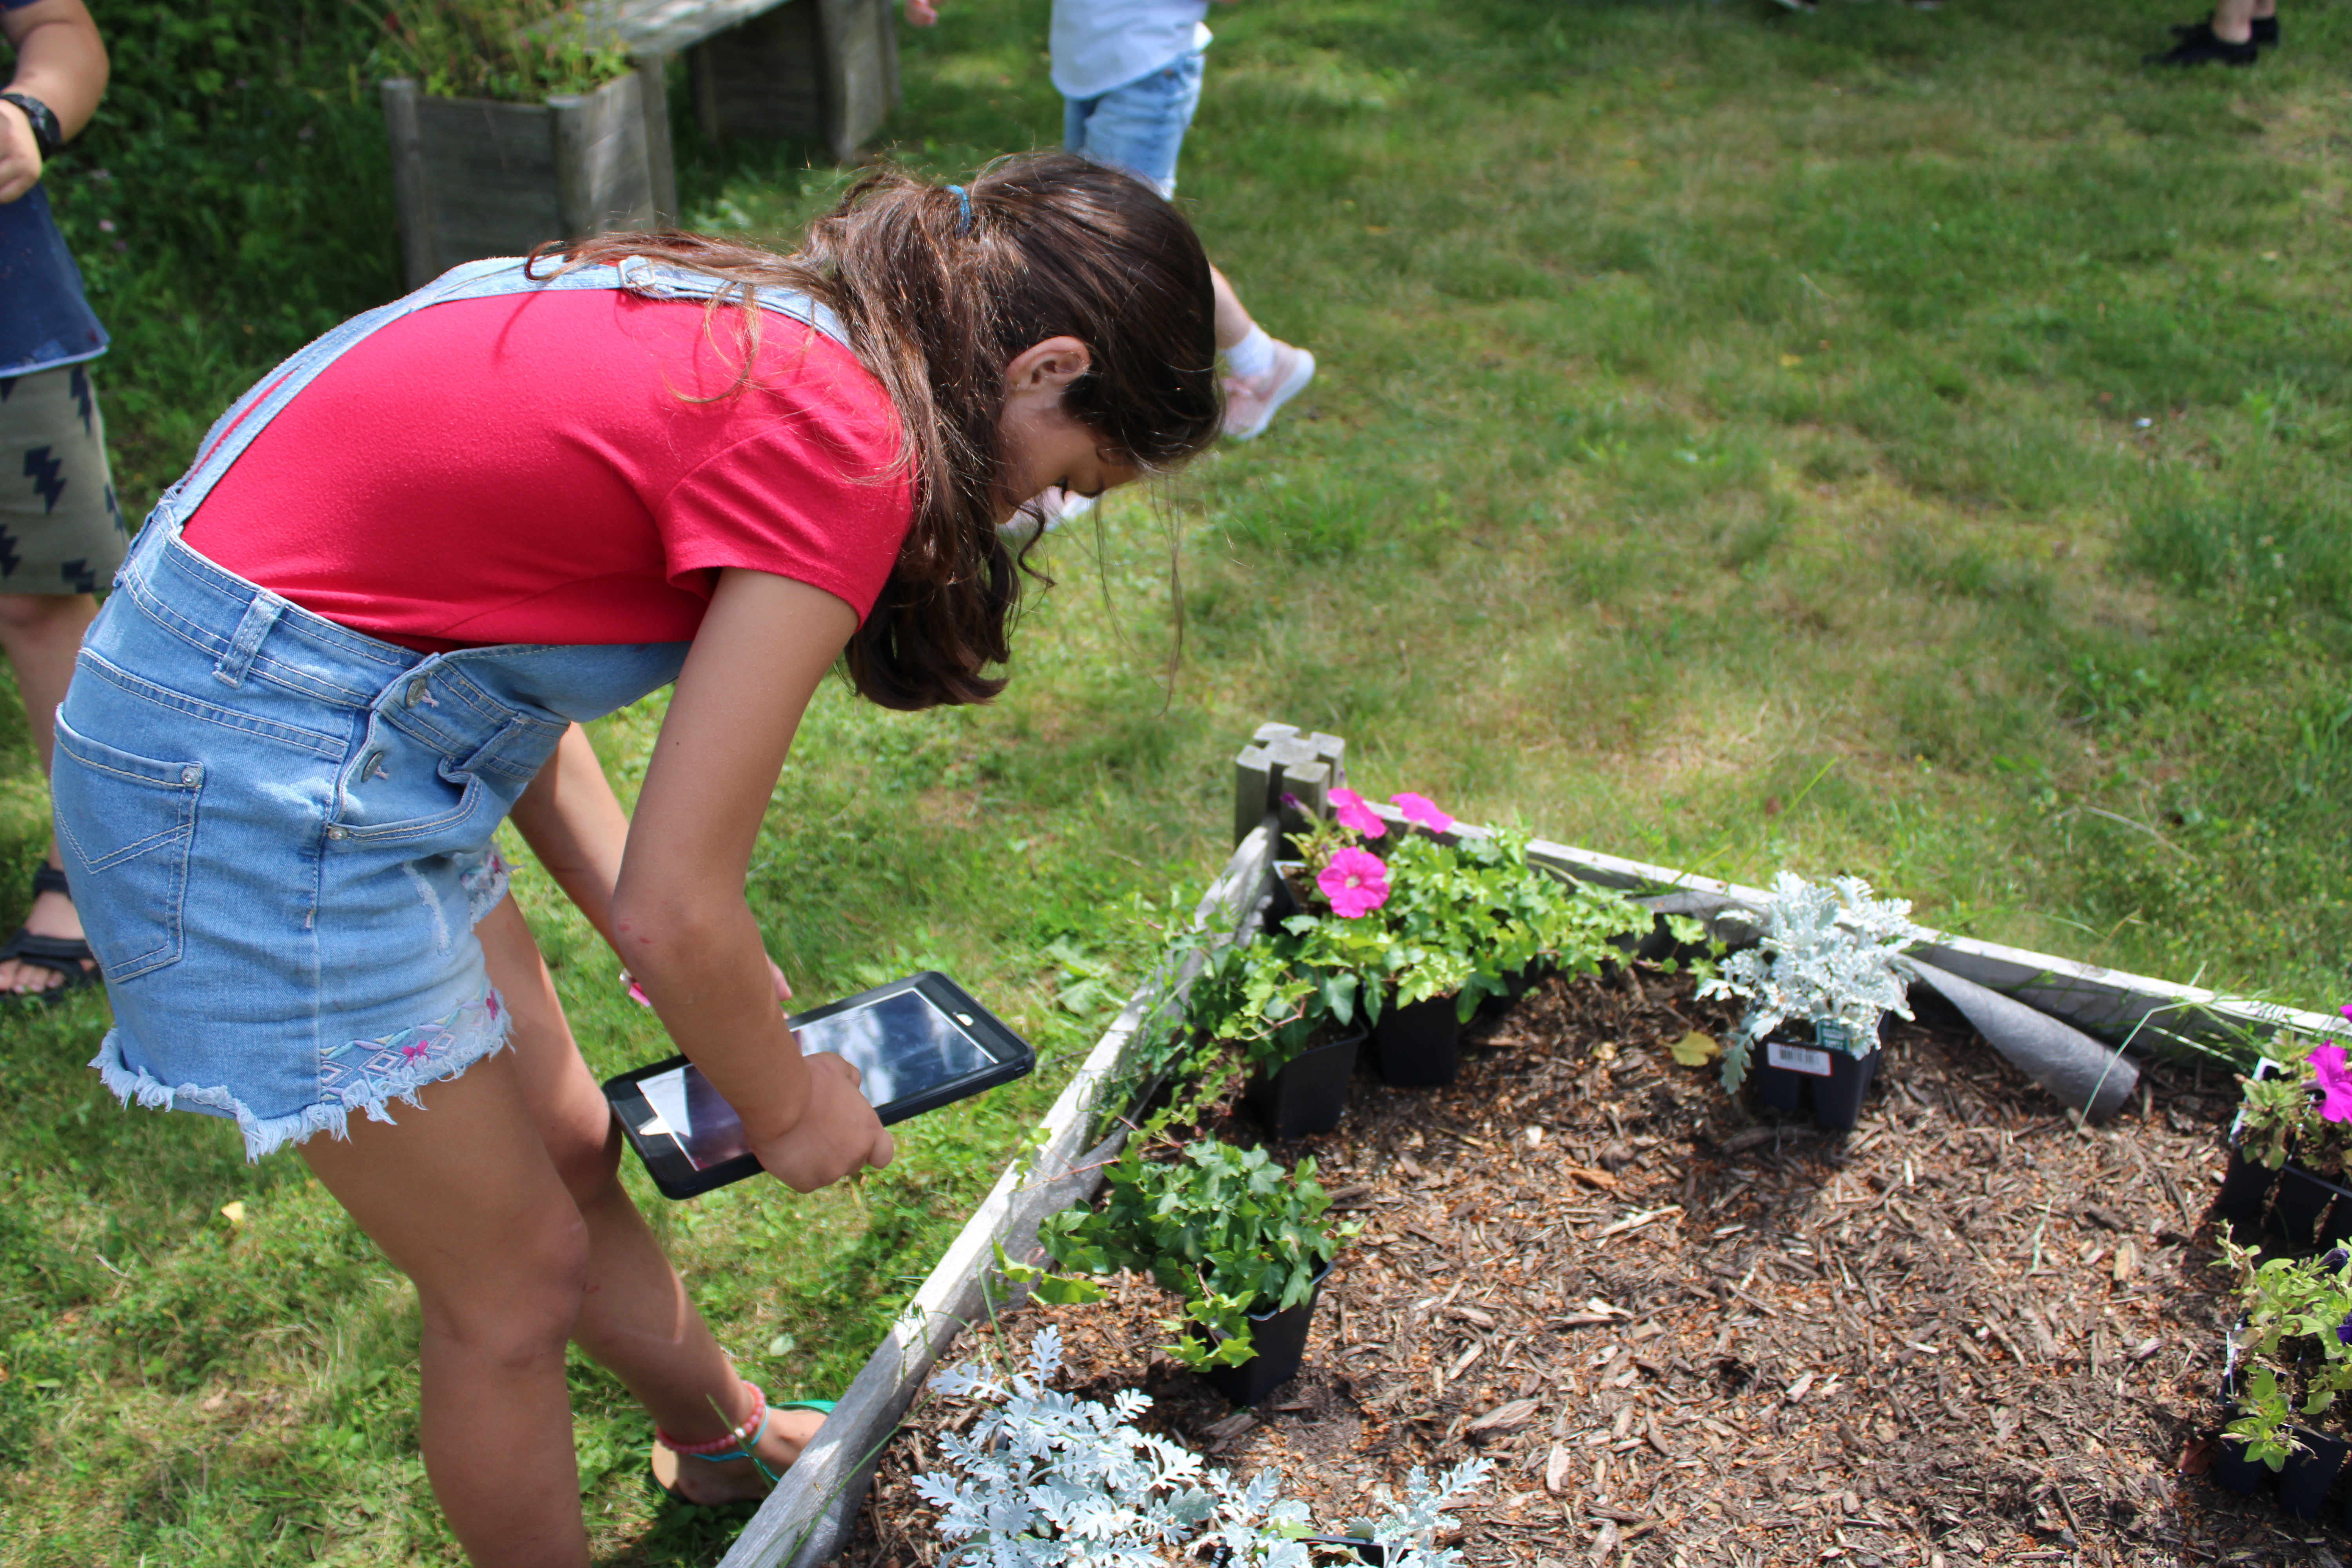 Tree House student using tablet to identify plants in garden bed